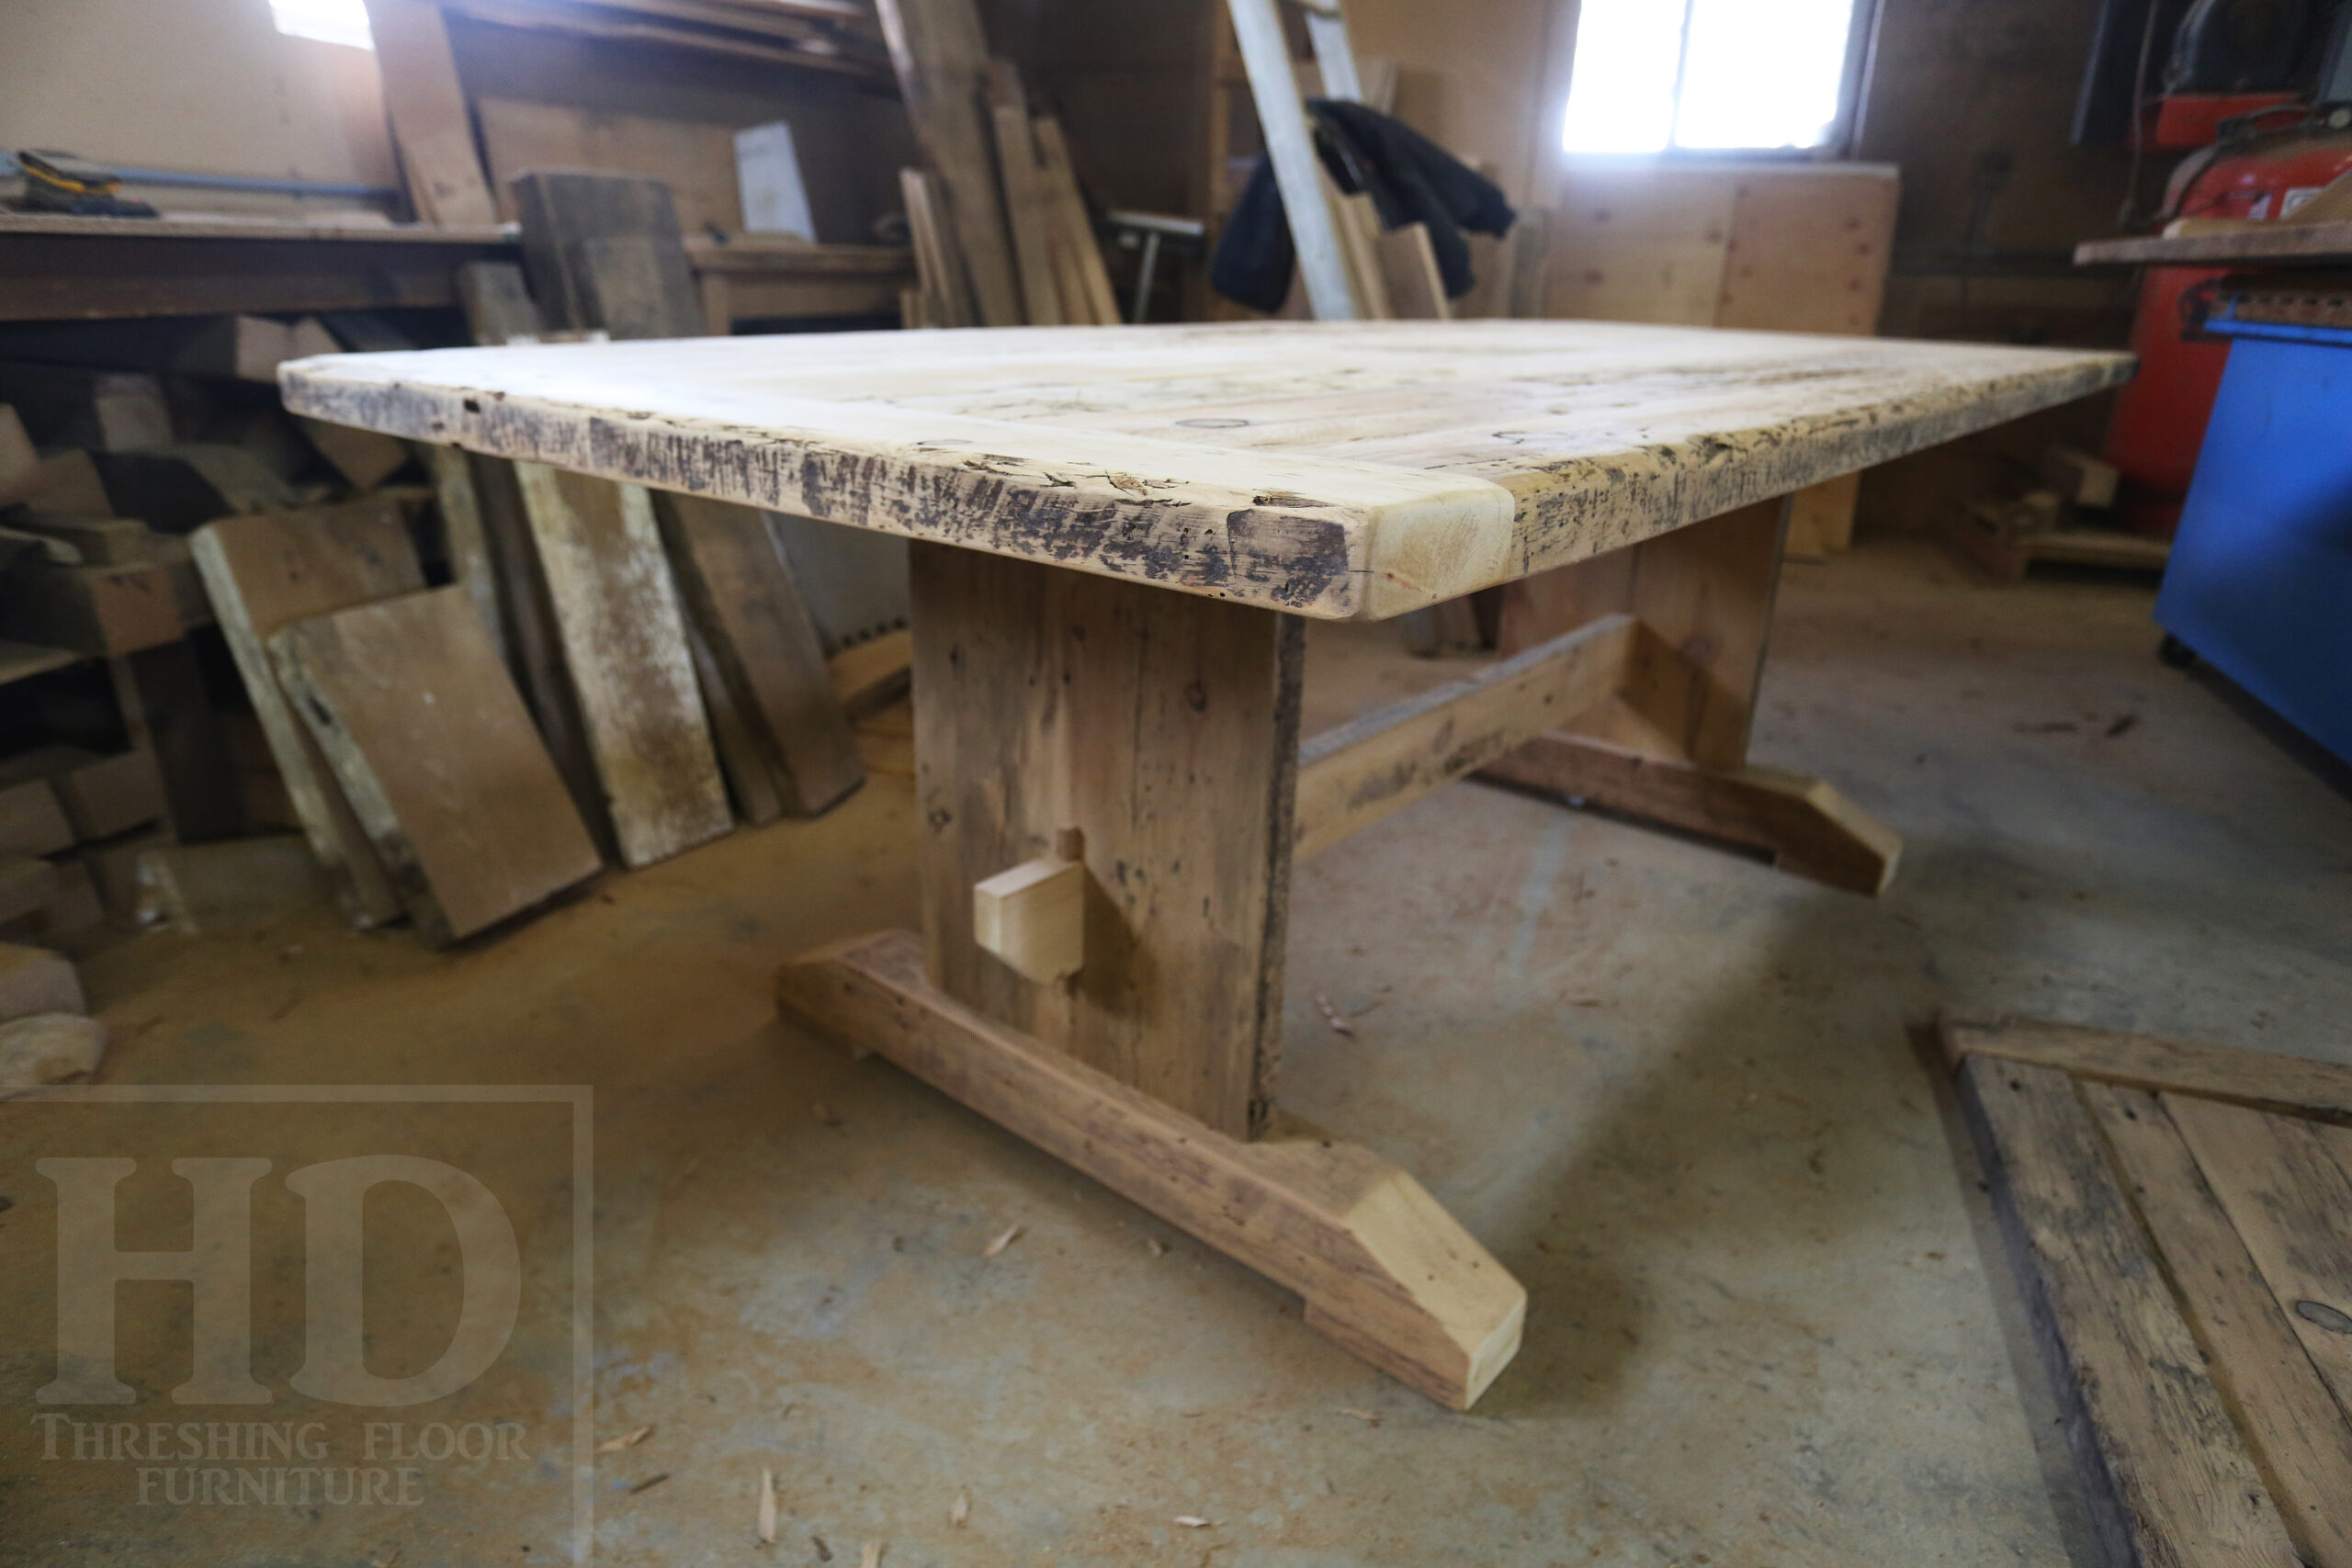 """7' Ontario Barnwood Table for a Grassie, Ontario Home - 42"""" wide - Trestle Base - Reclaimed Old Growth Pine Threshing Floor Construction - Original Distressing & Character & Edges Maintained - Premium epoxy + satin polyurethane finish - One 18"""" Leaf Extension - 7' [matching] Trestle Bench - 5 Wormy Maple Chairs - Stained to match table - www.table.ca"""